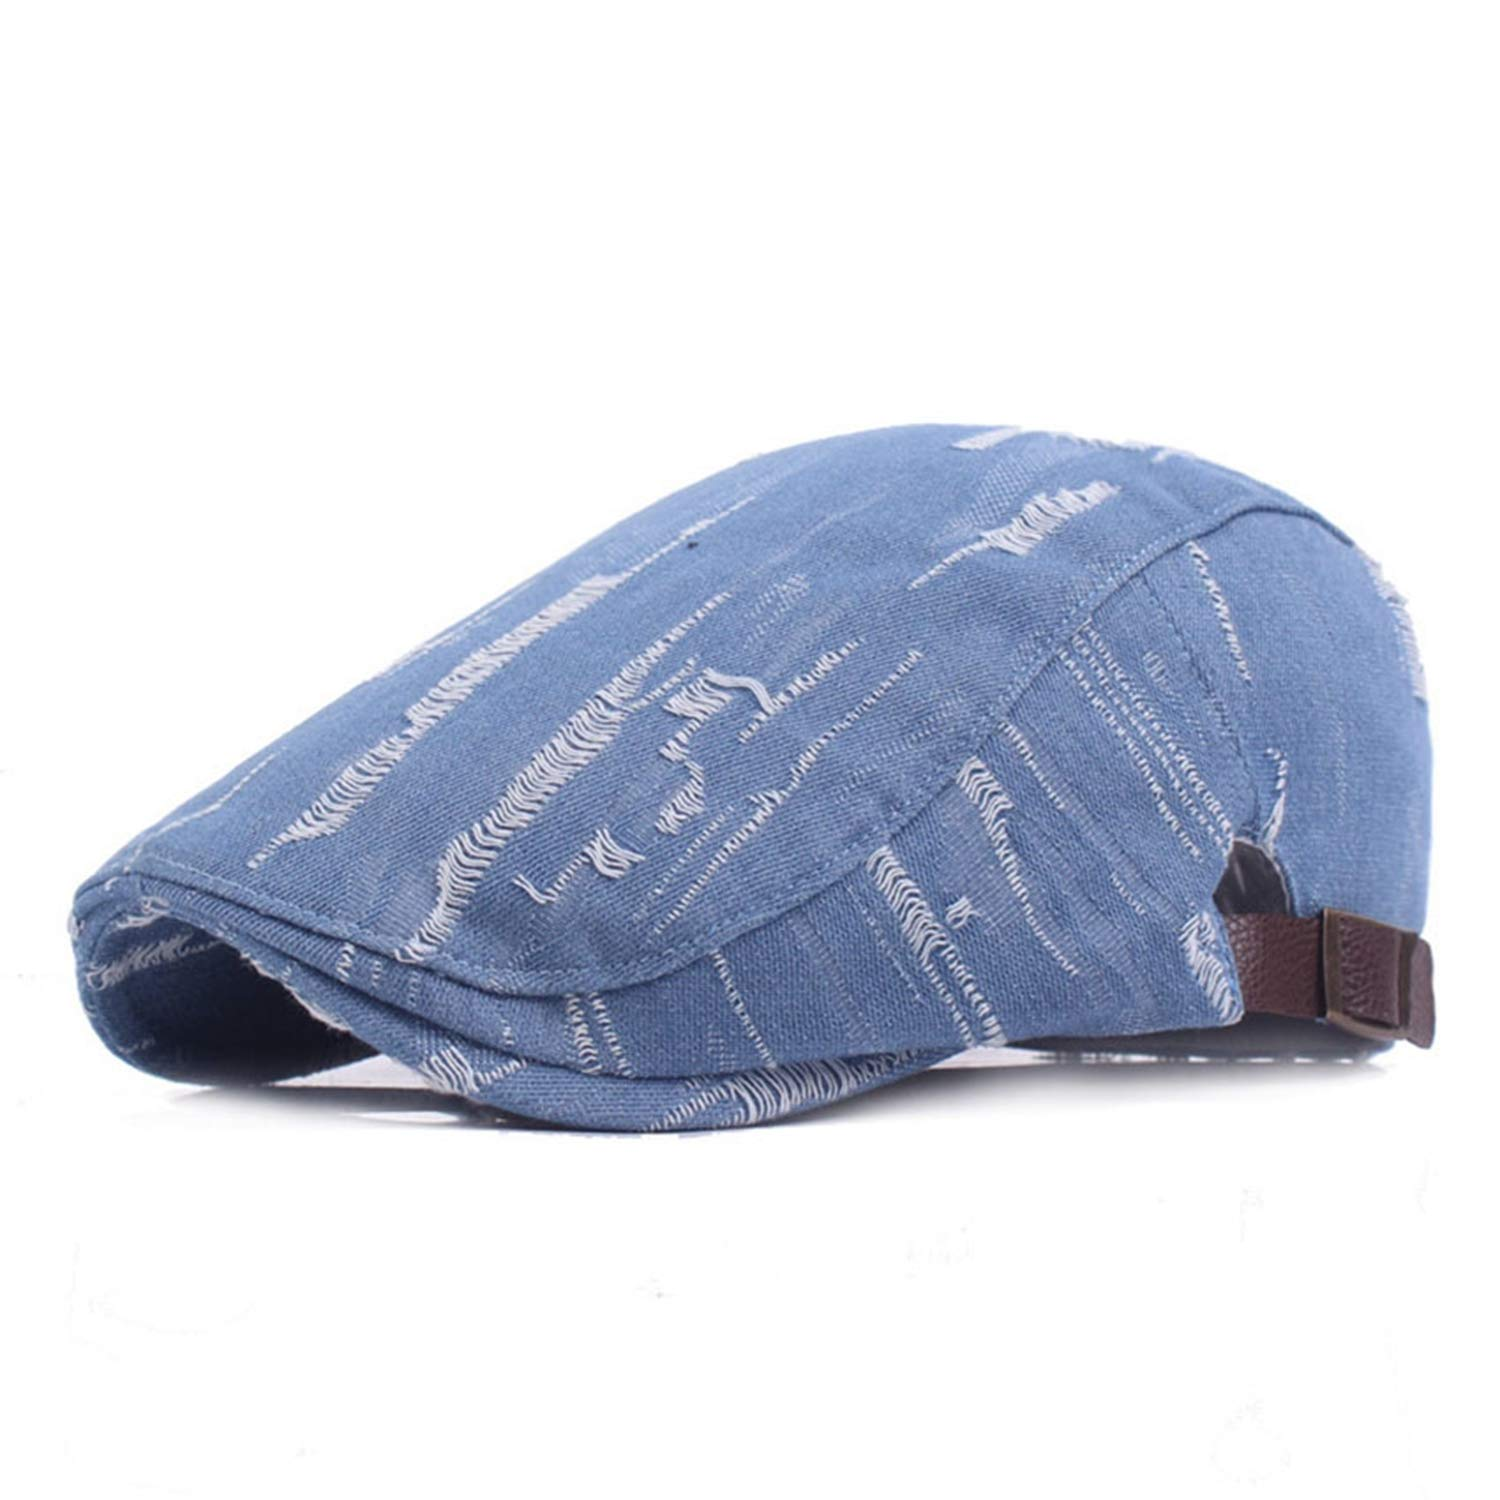 Denim Ivy Caps for Men Women British Ripped Jeans Flat Cap Berets Spring Autumn Vintage Fashion Hats and Caps